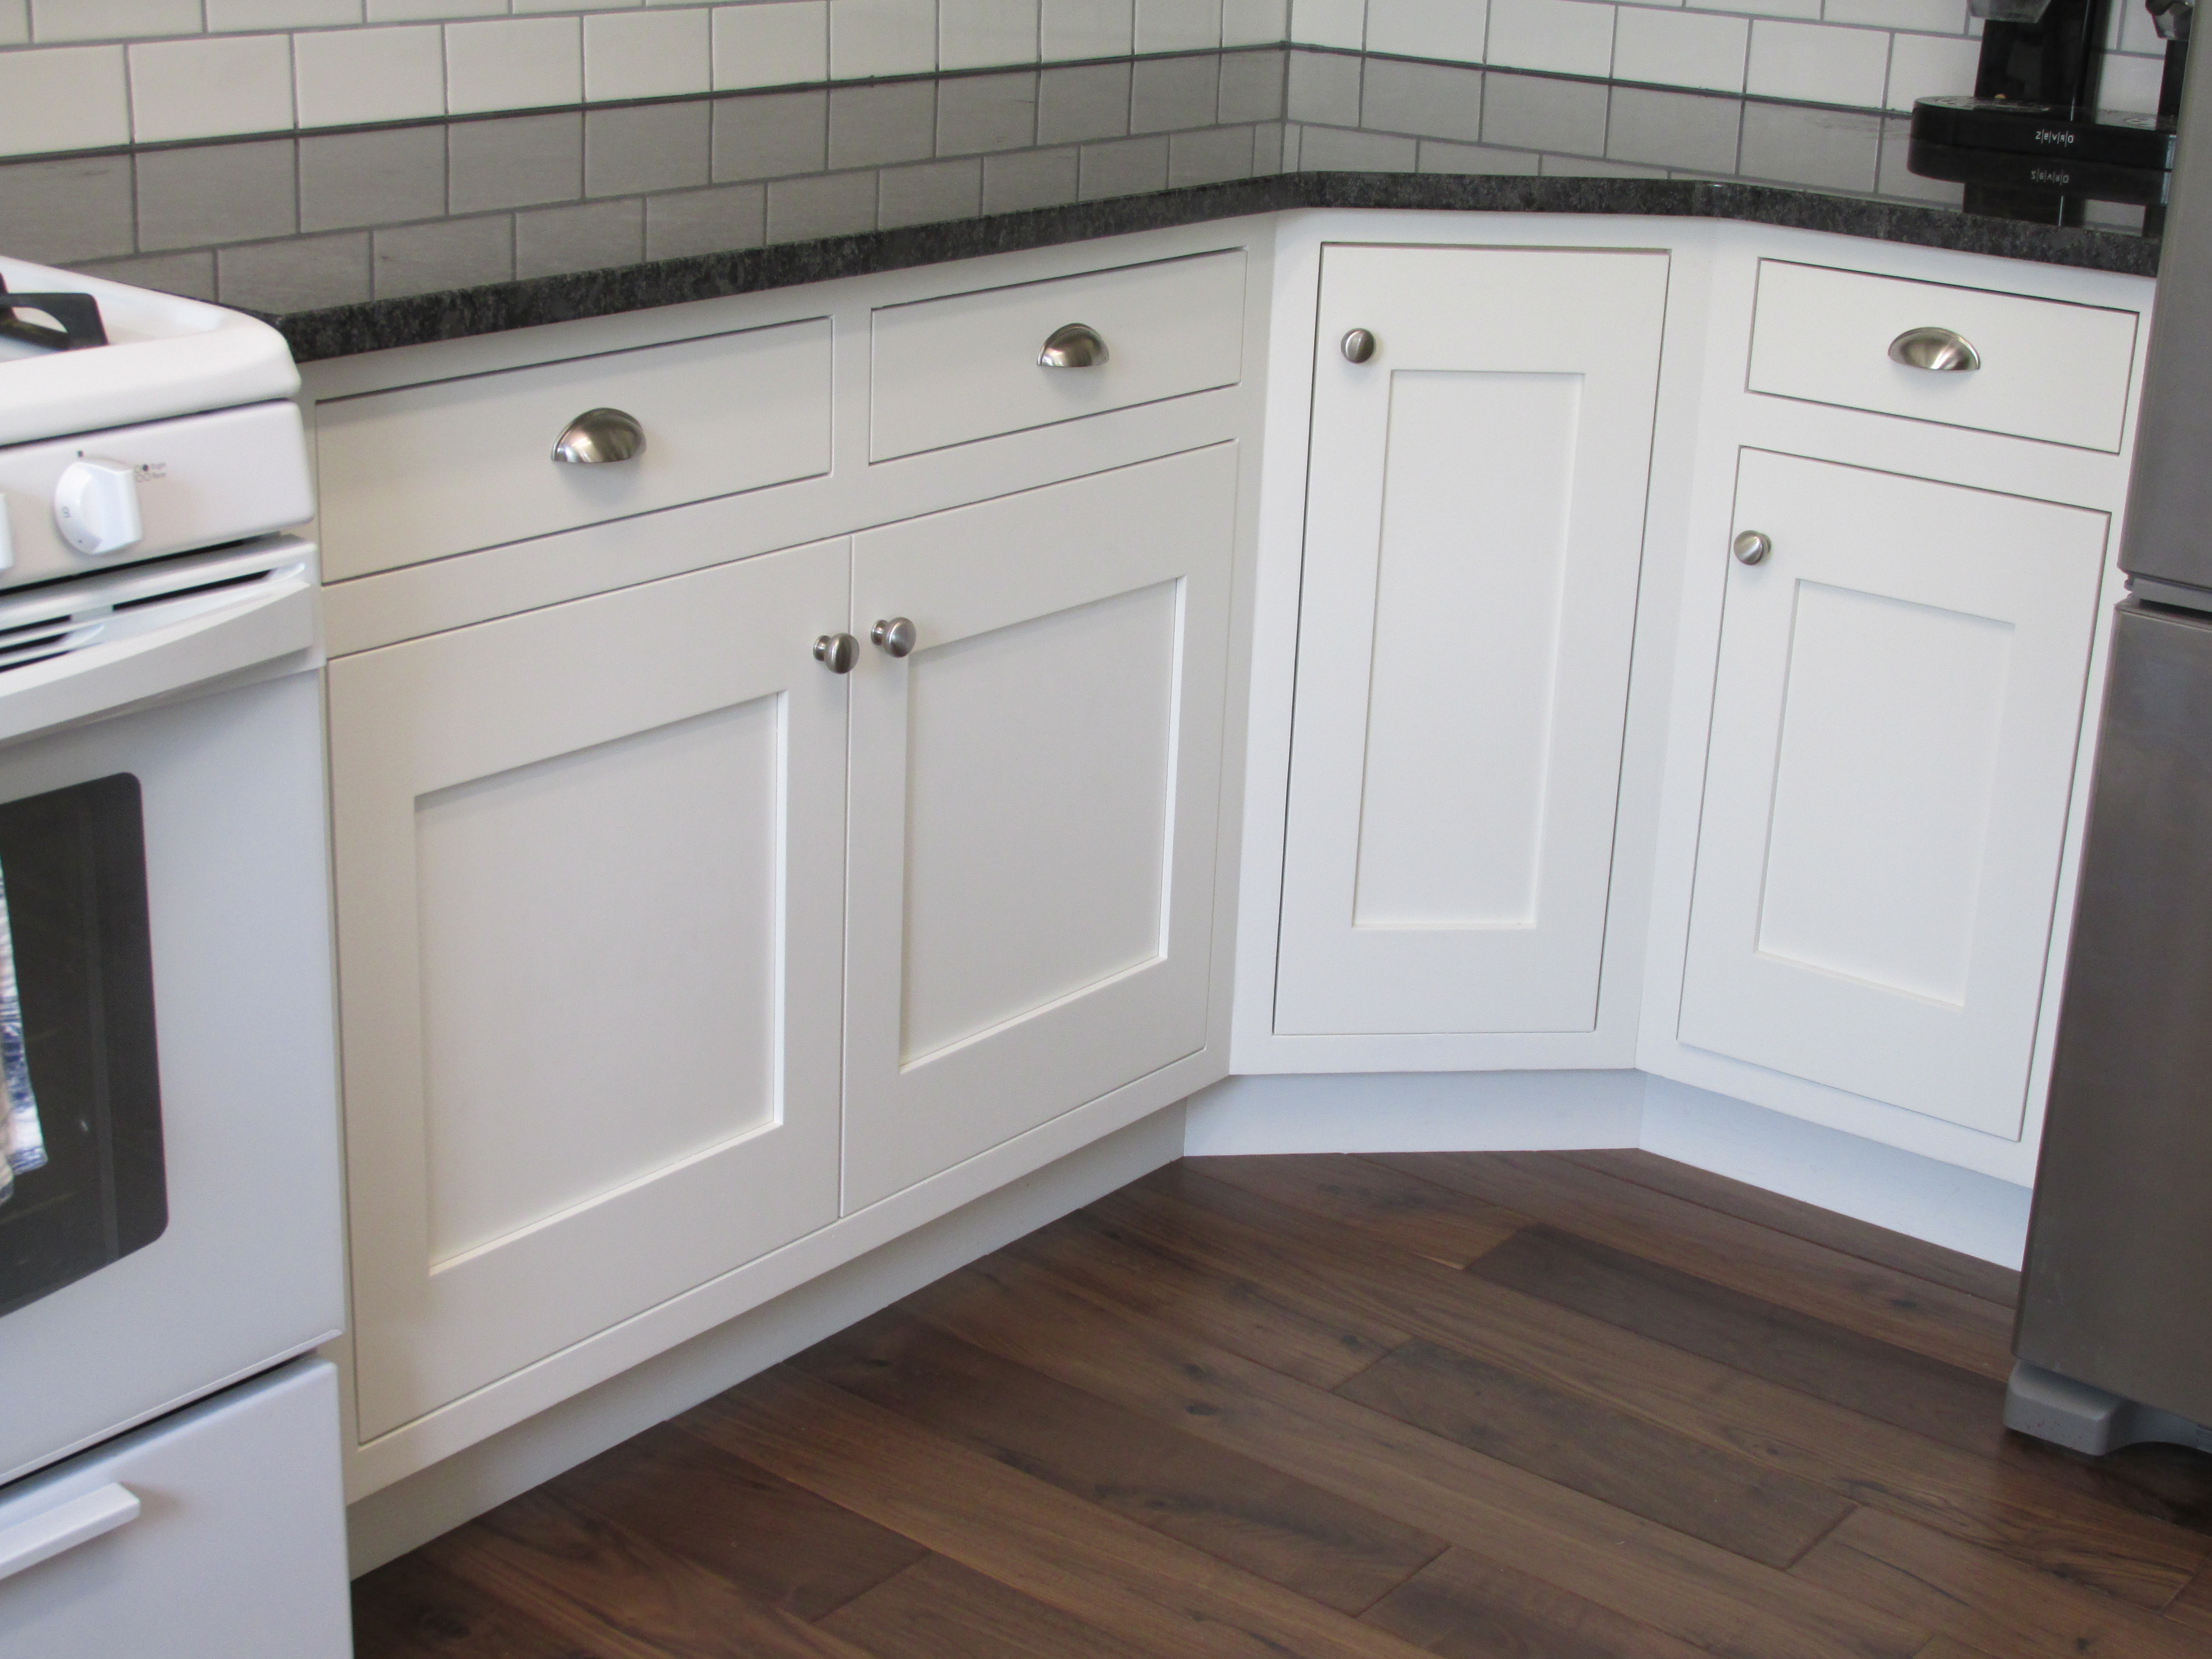 Best Kitchen Gallery: Kitchen Makeover From Partial Overlay To Inset of Flush Inset Kitchen Cabinets on cal-ite.com